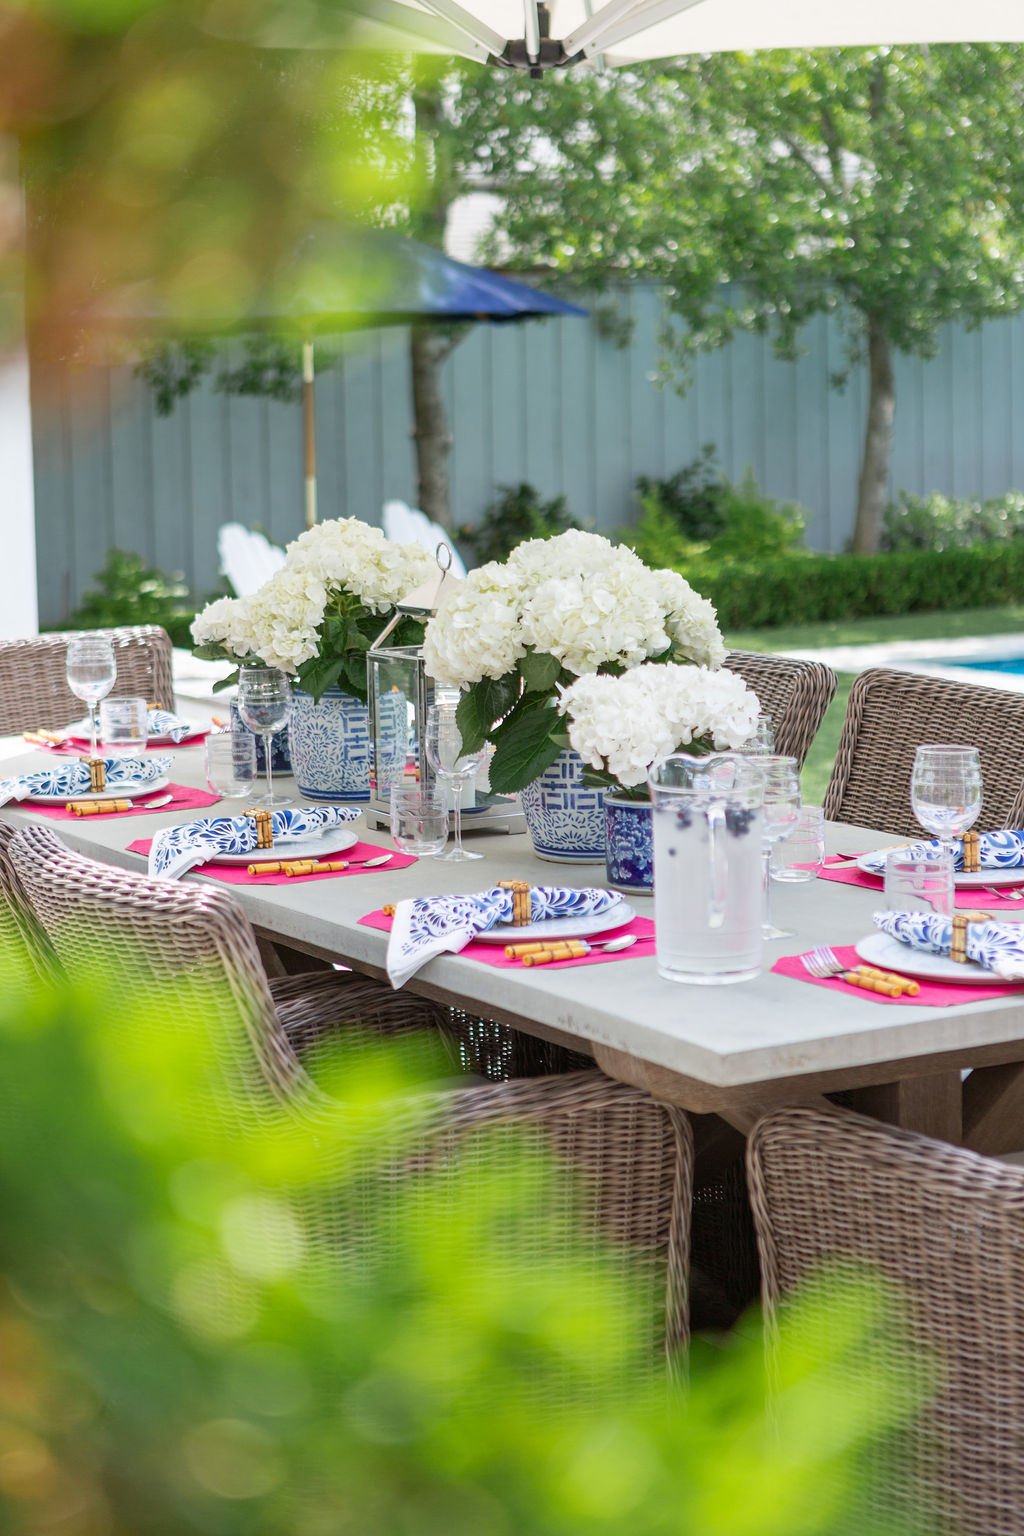 Blue and White Summer Tablesetting, Outdoor Entertaining, Summer Tablescape